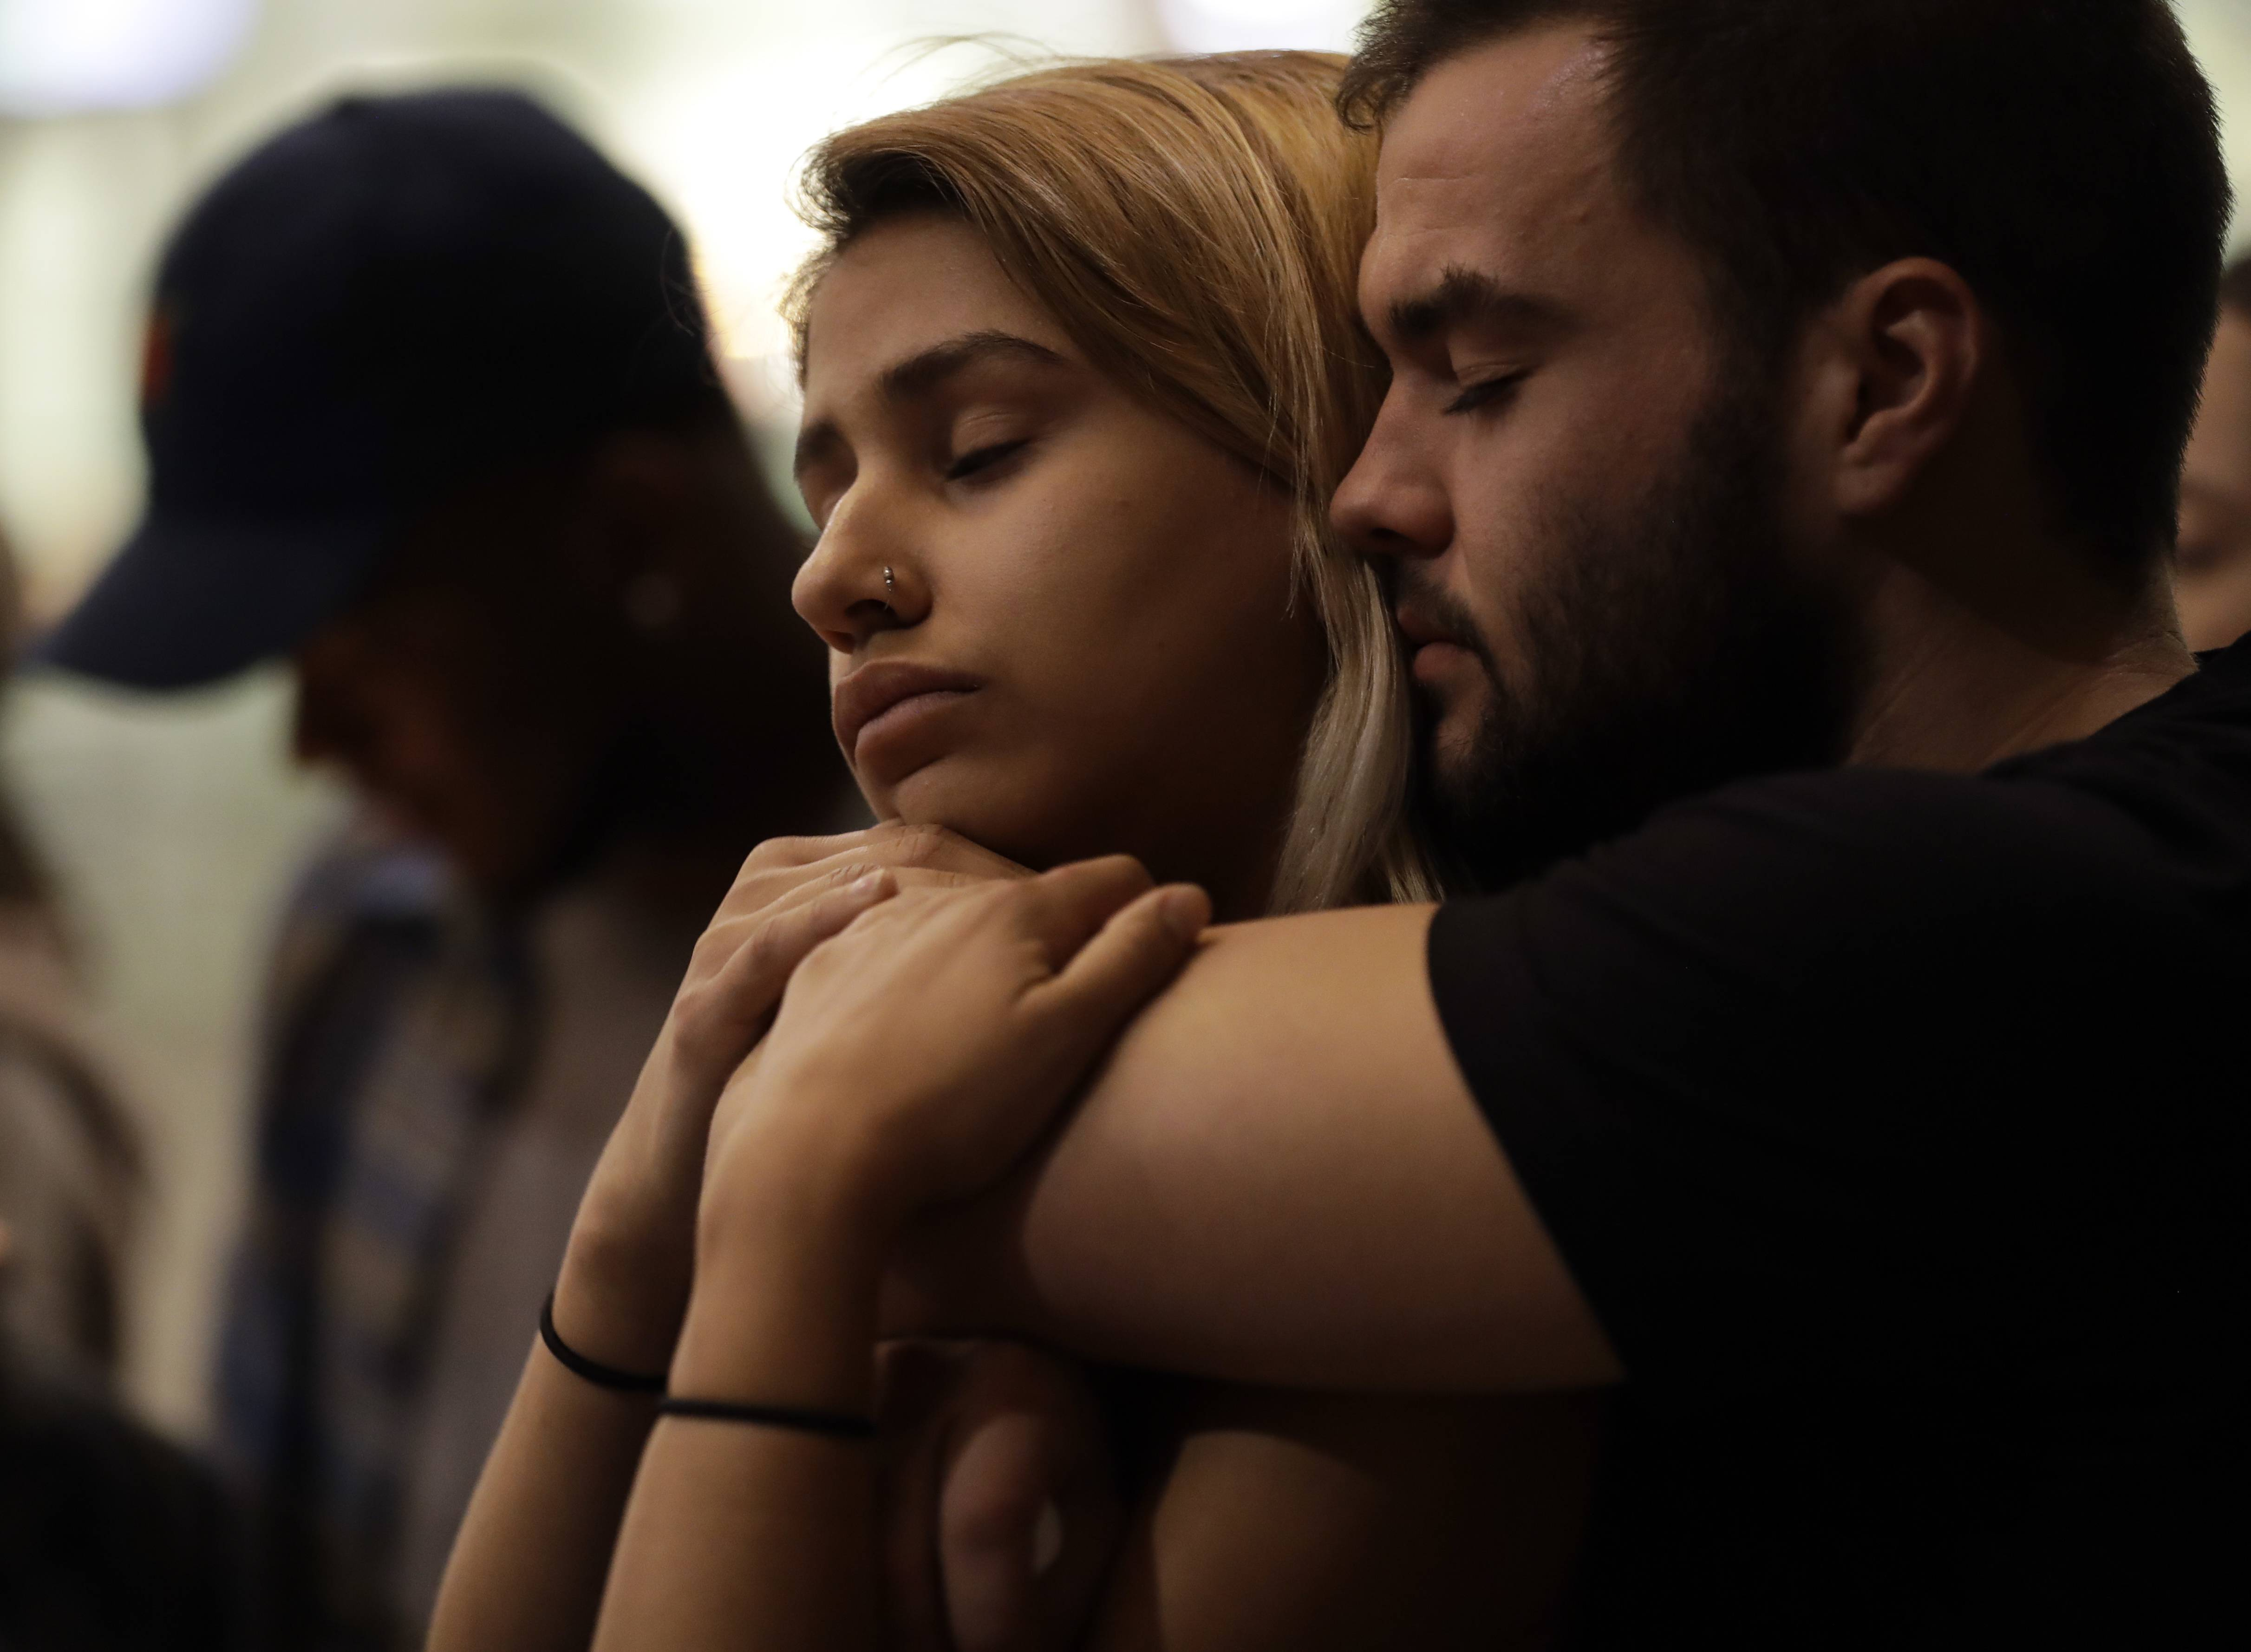 Image result for University of Nevada Las Vegas students Raymond Lloyd, right, and Karla Rodriguez take part in a vigil Monday, Oct. 2, 2017, in Las Vegas. A gunman on the 32nd floor of the Mandalay Bay casino hotel rained automatic weapons fire down on the crowd of over 22,000 at an outdoor country music festival Sunday. (AP Photo/Gregory Bull) Gregory Bull